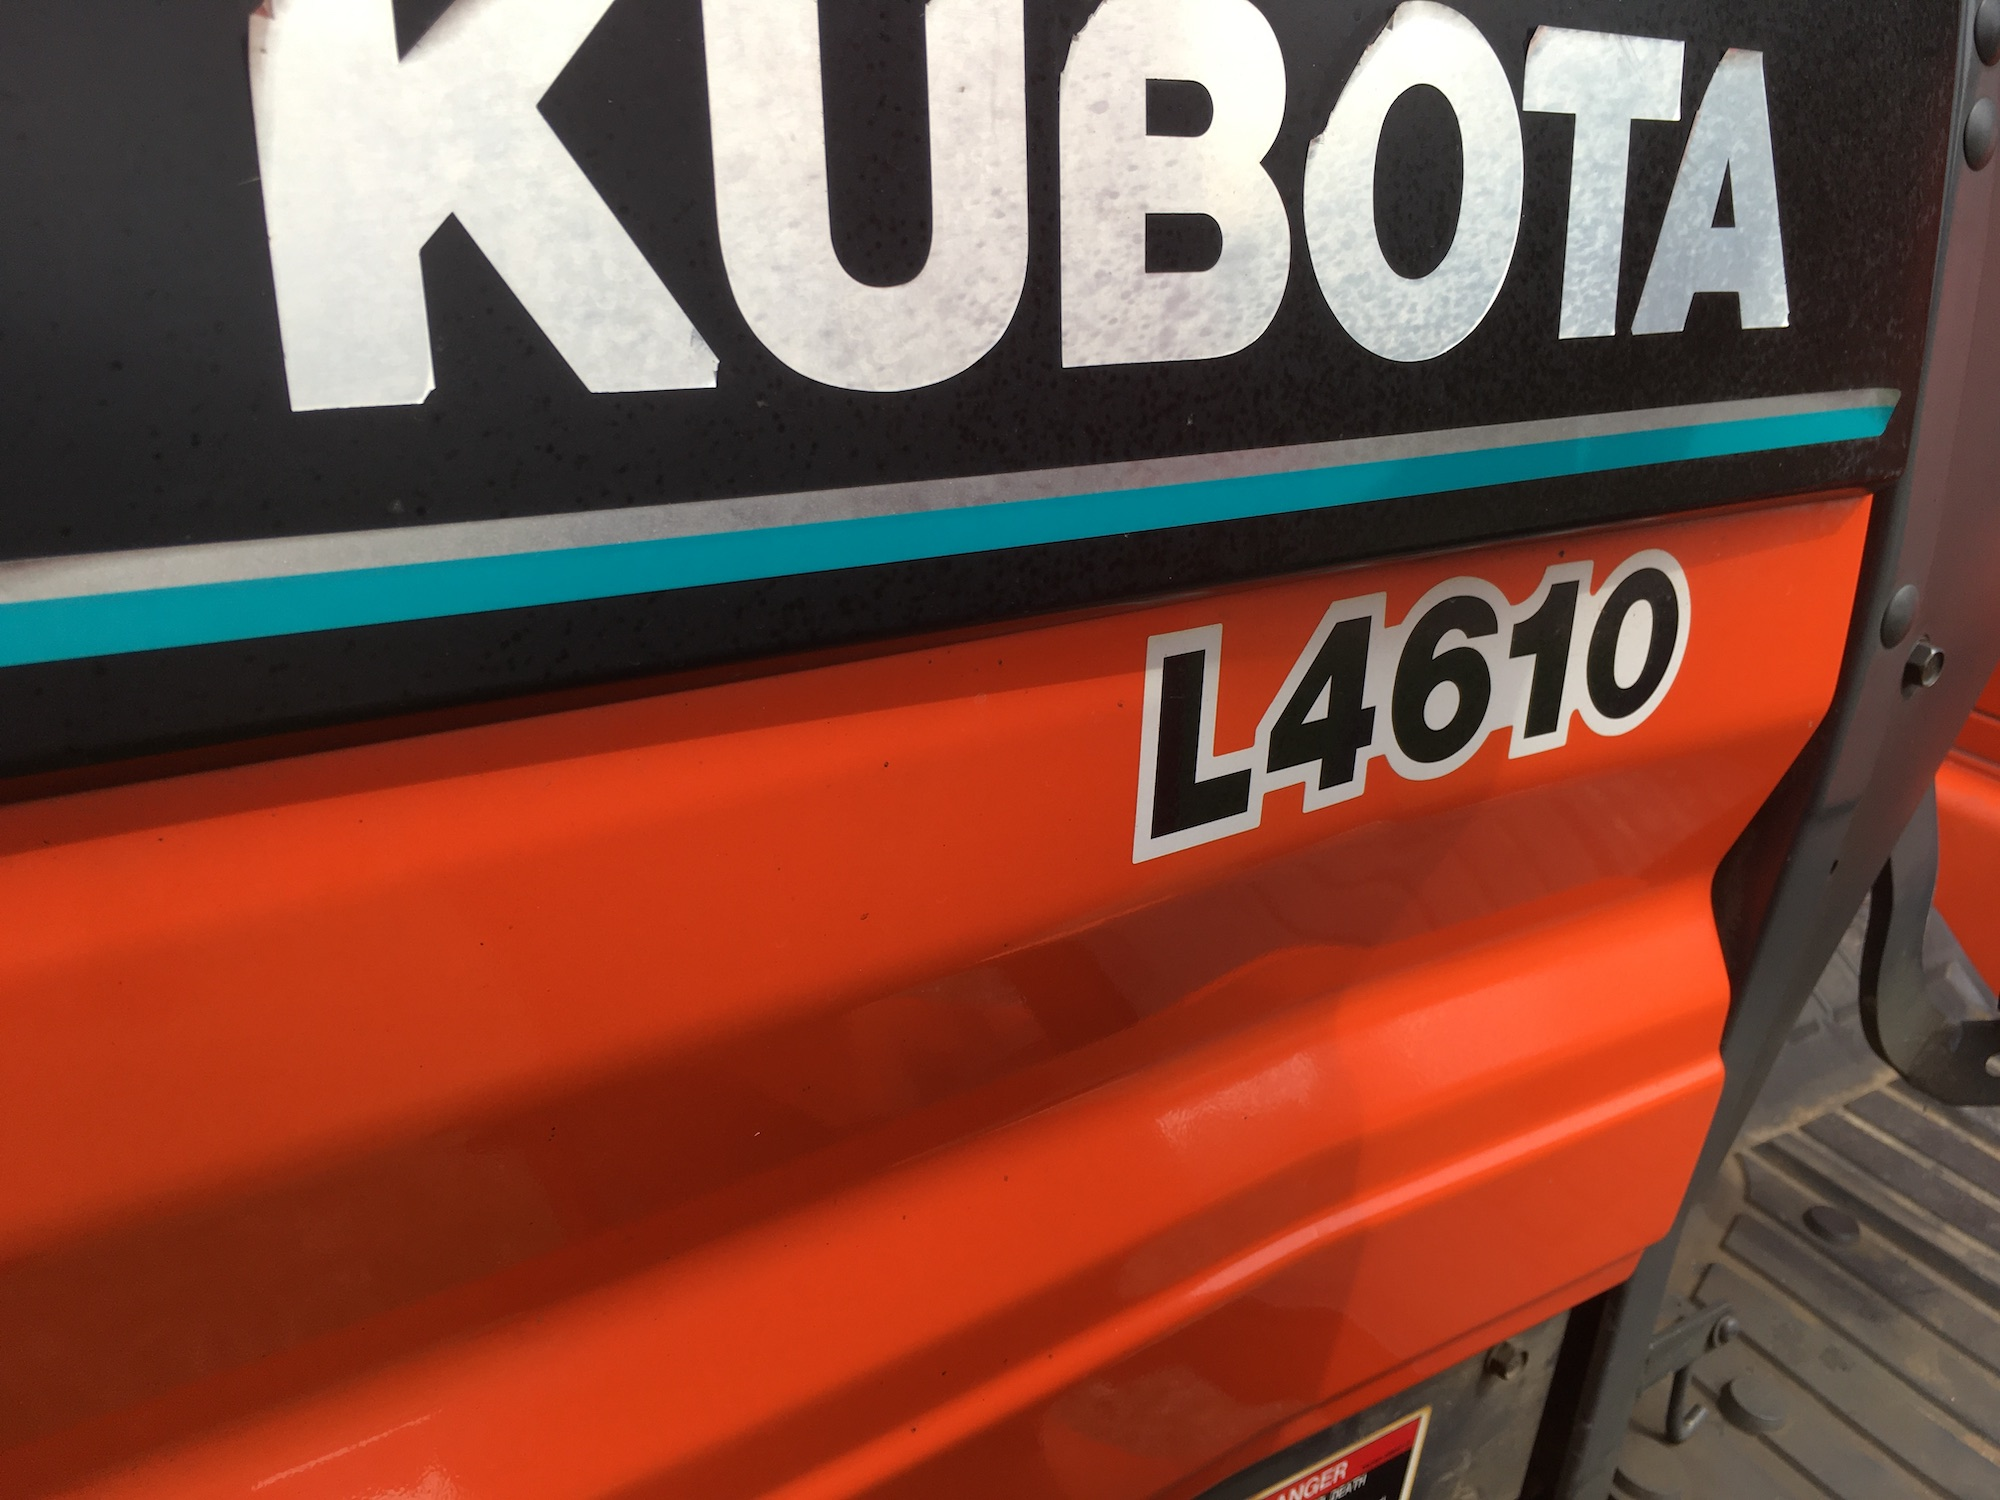 Kubota-L4610-Tractor-and-Front-Loader-05